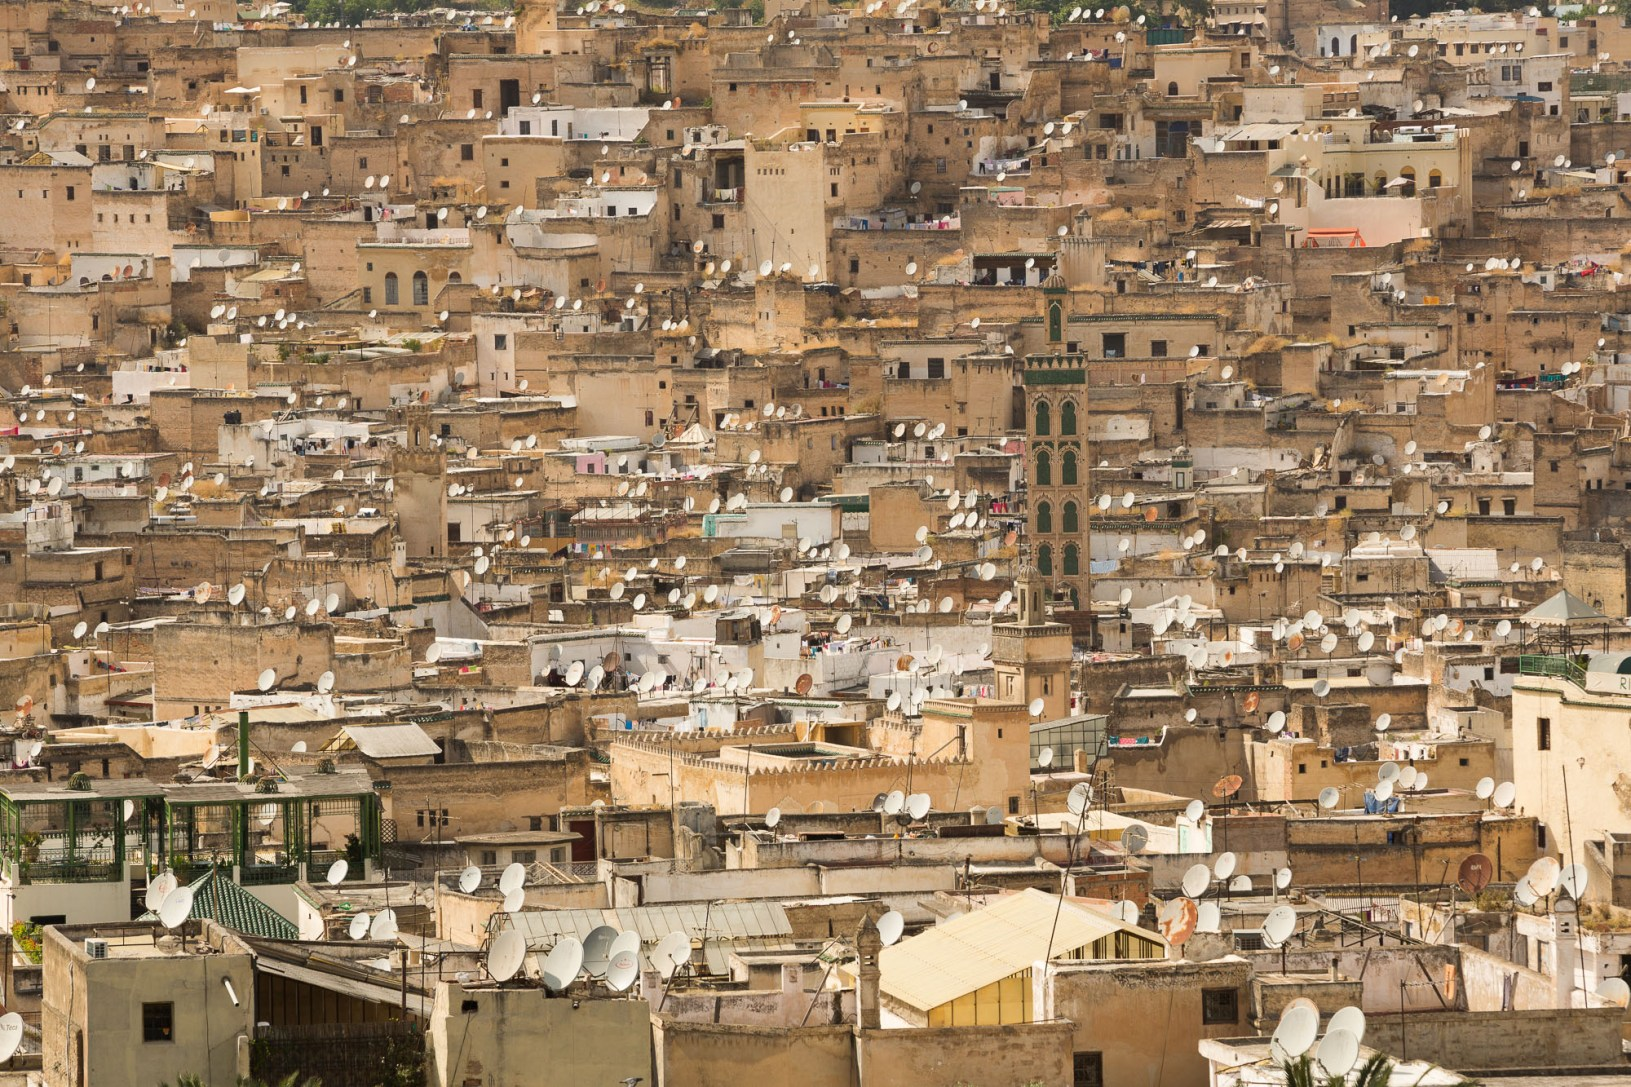 Satellite dishes dot rooftops in the old Medina of Fez, Morocco.